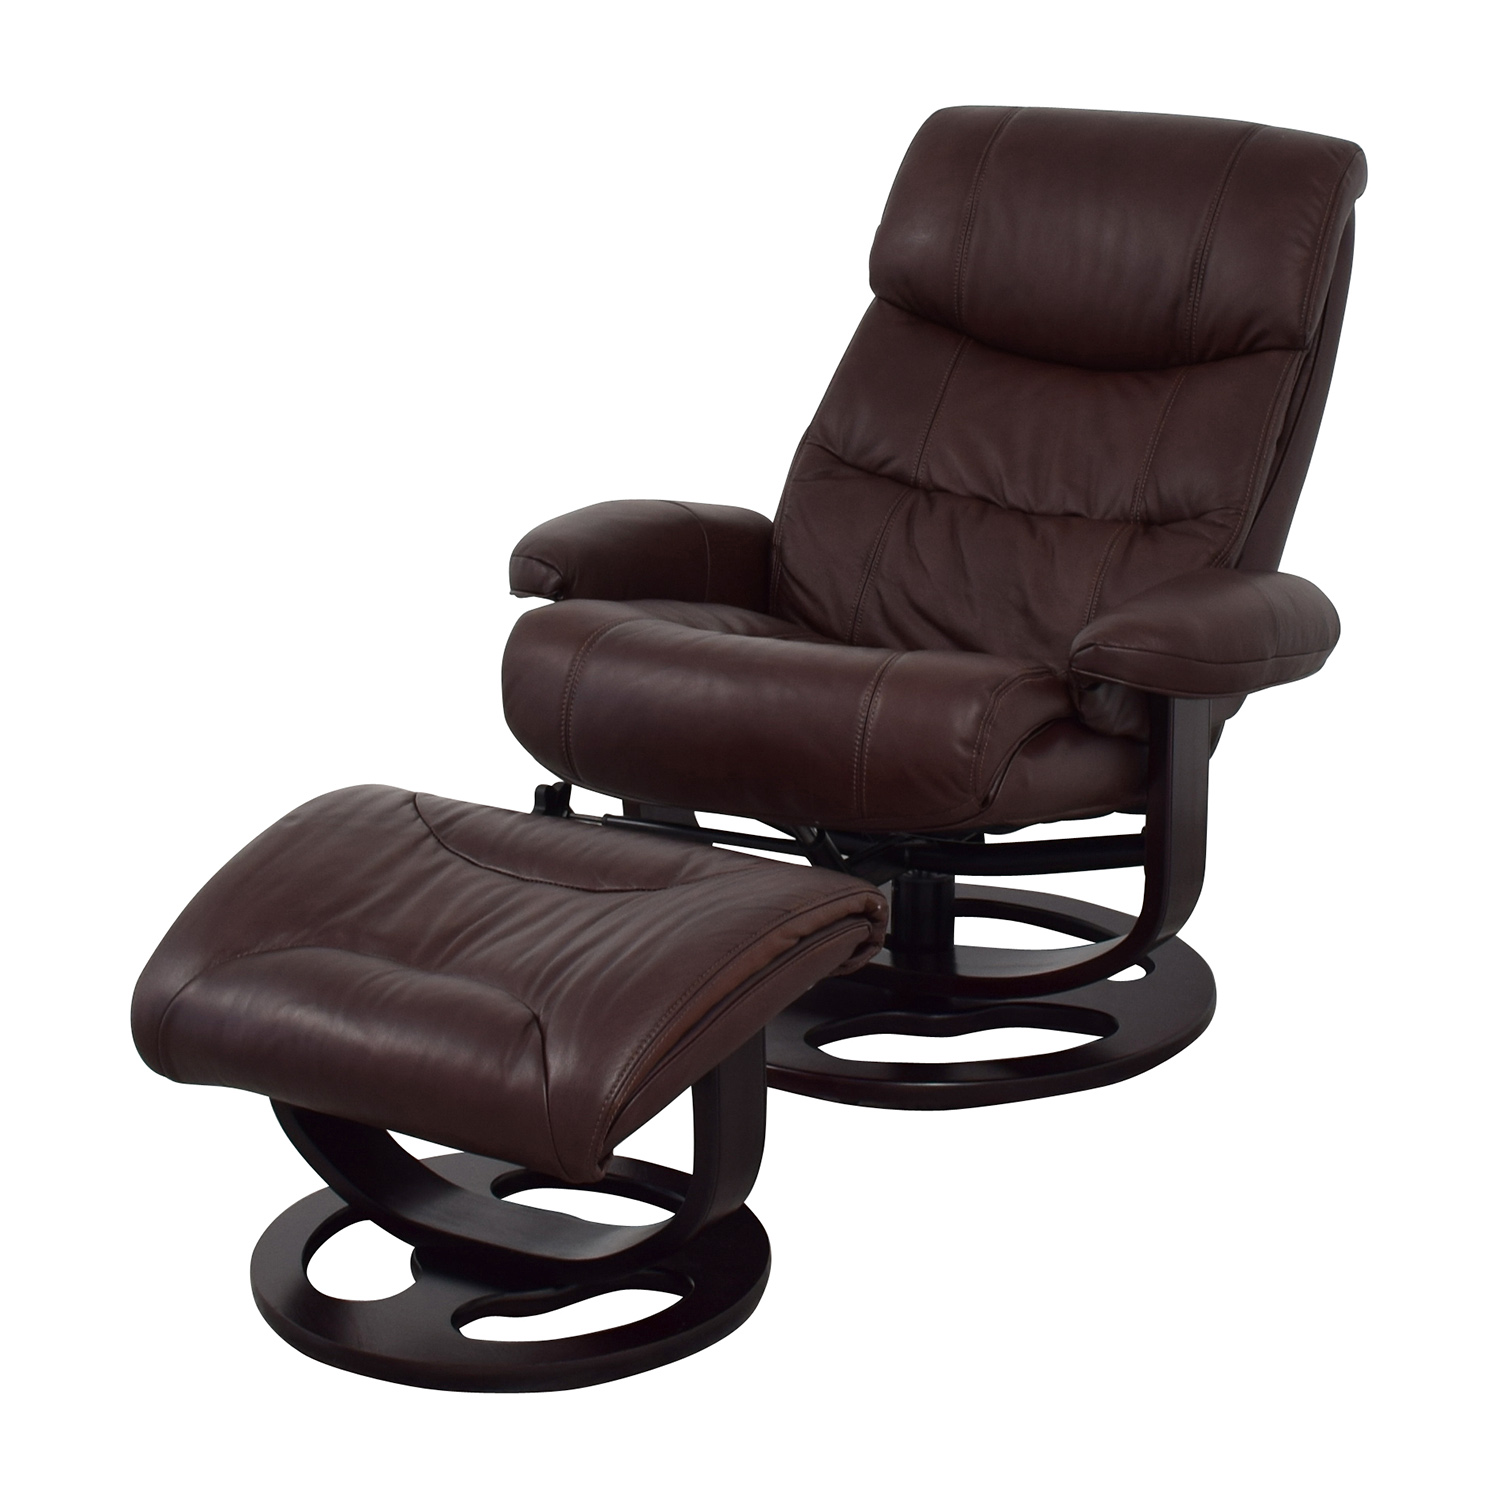 Macys Macys Aby Brown Leather Recliner Chair & Ottoman price